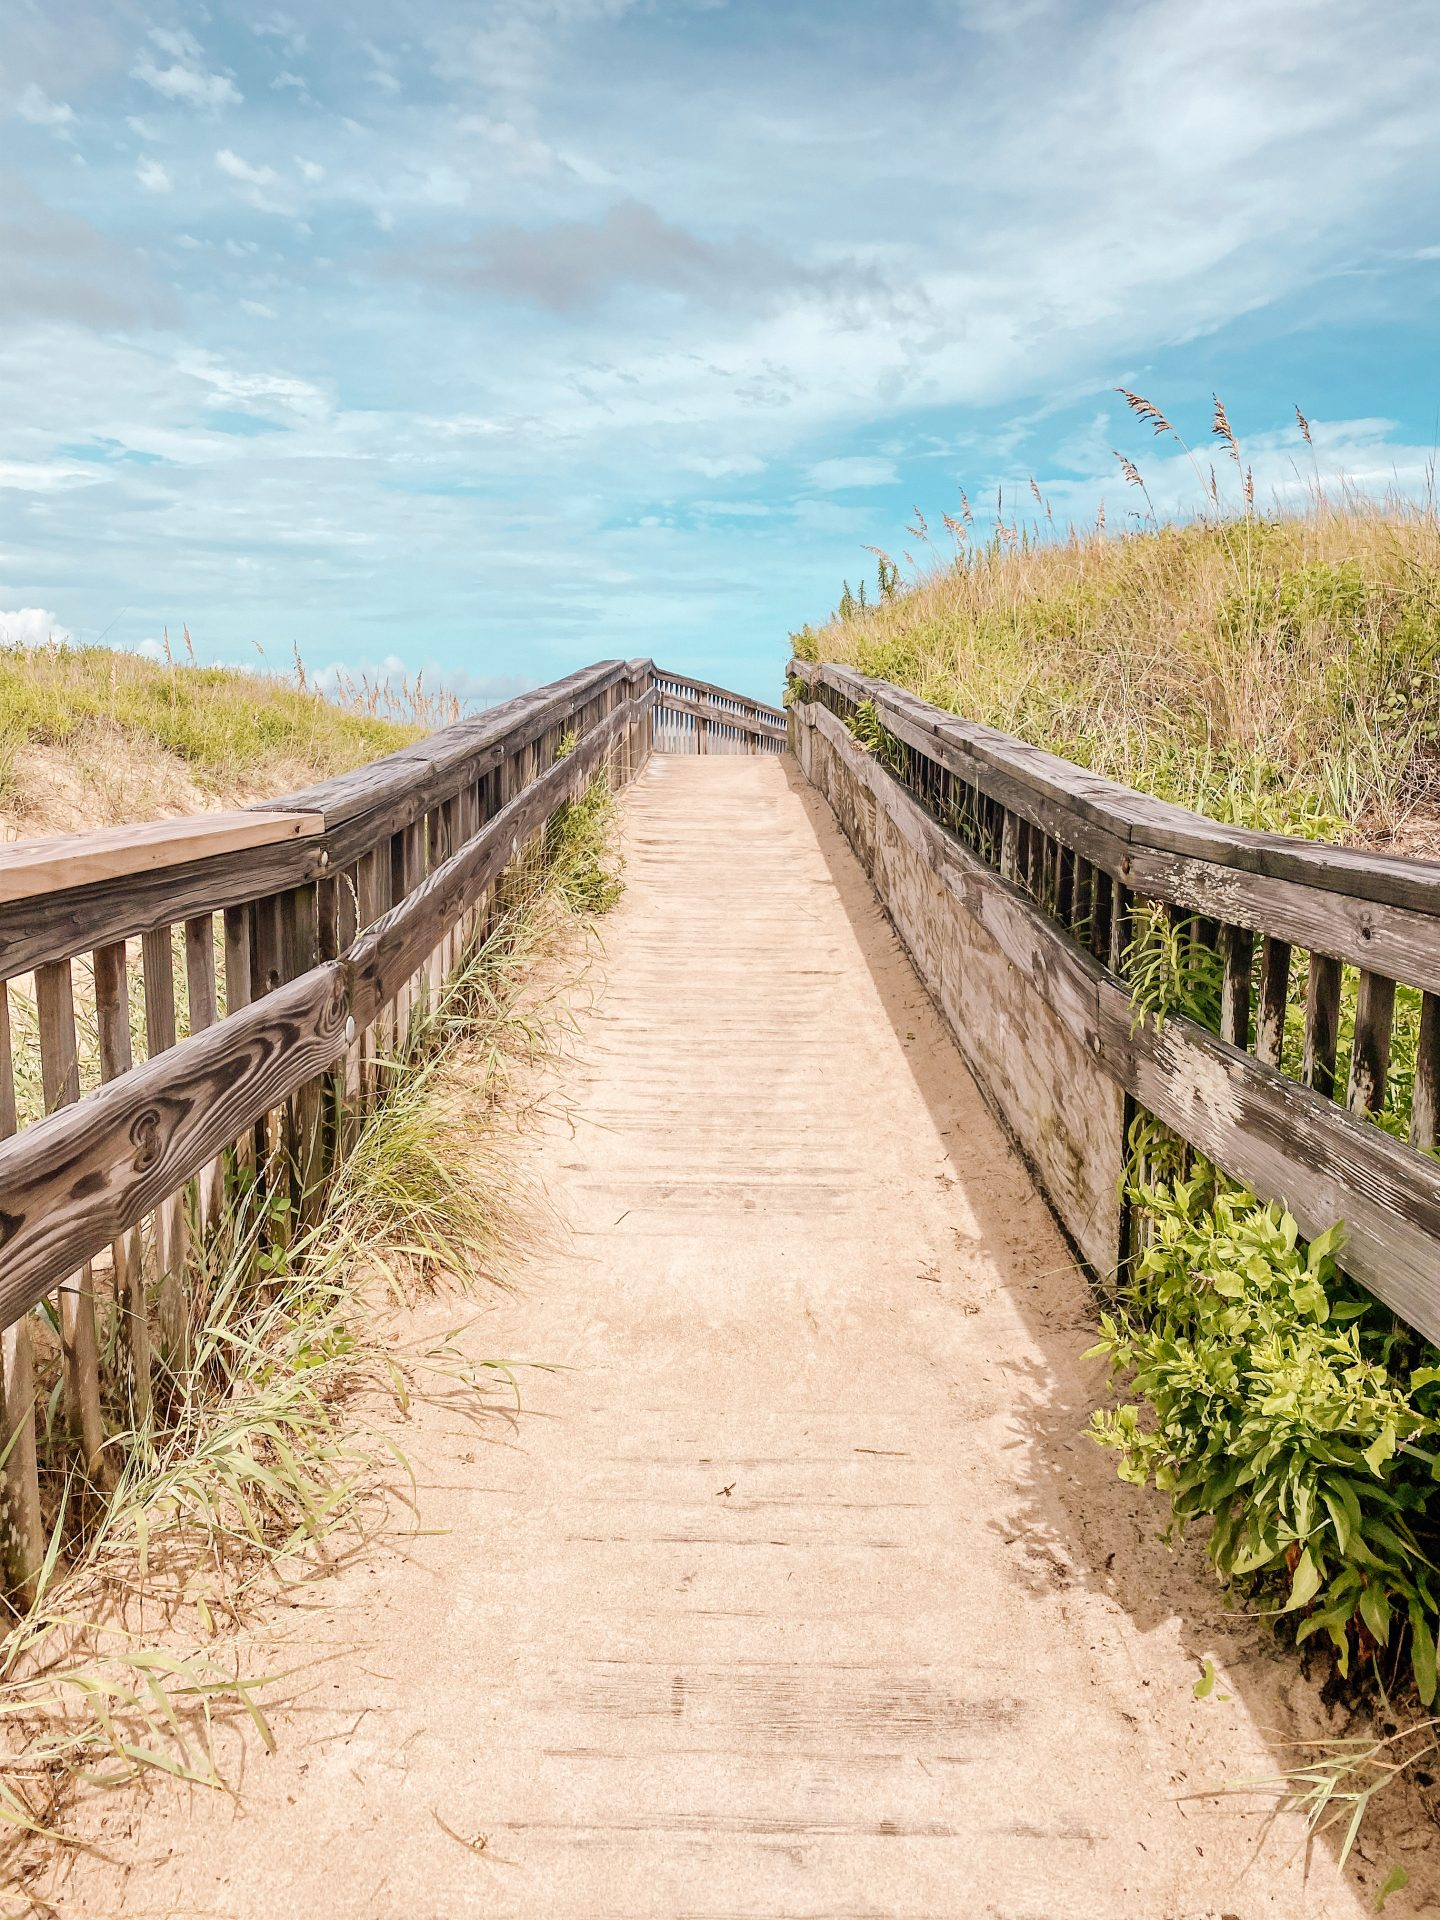 Blue skies with fluffy clouds overlooking a wooden walkway leading to the ocean in the outer banks of North Carolina while on a road trip